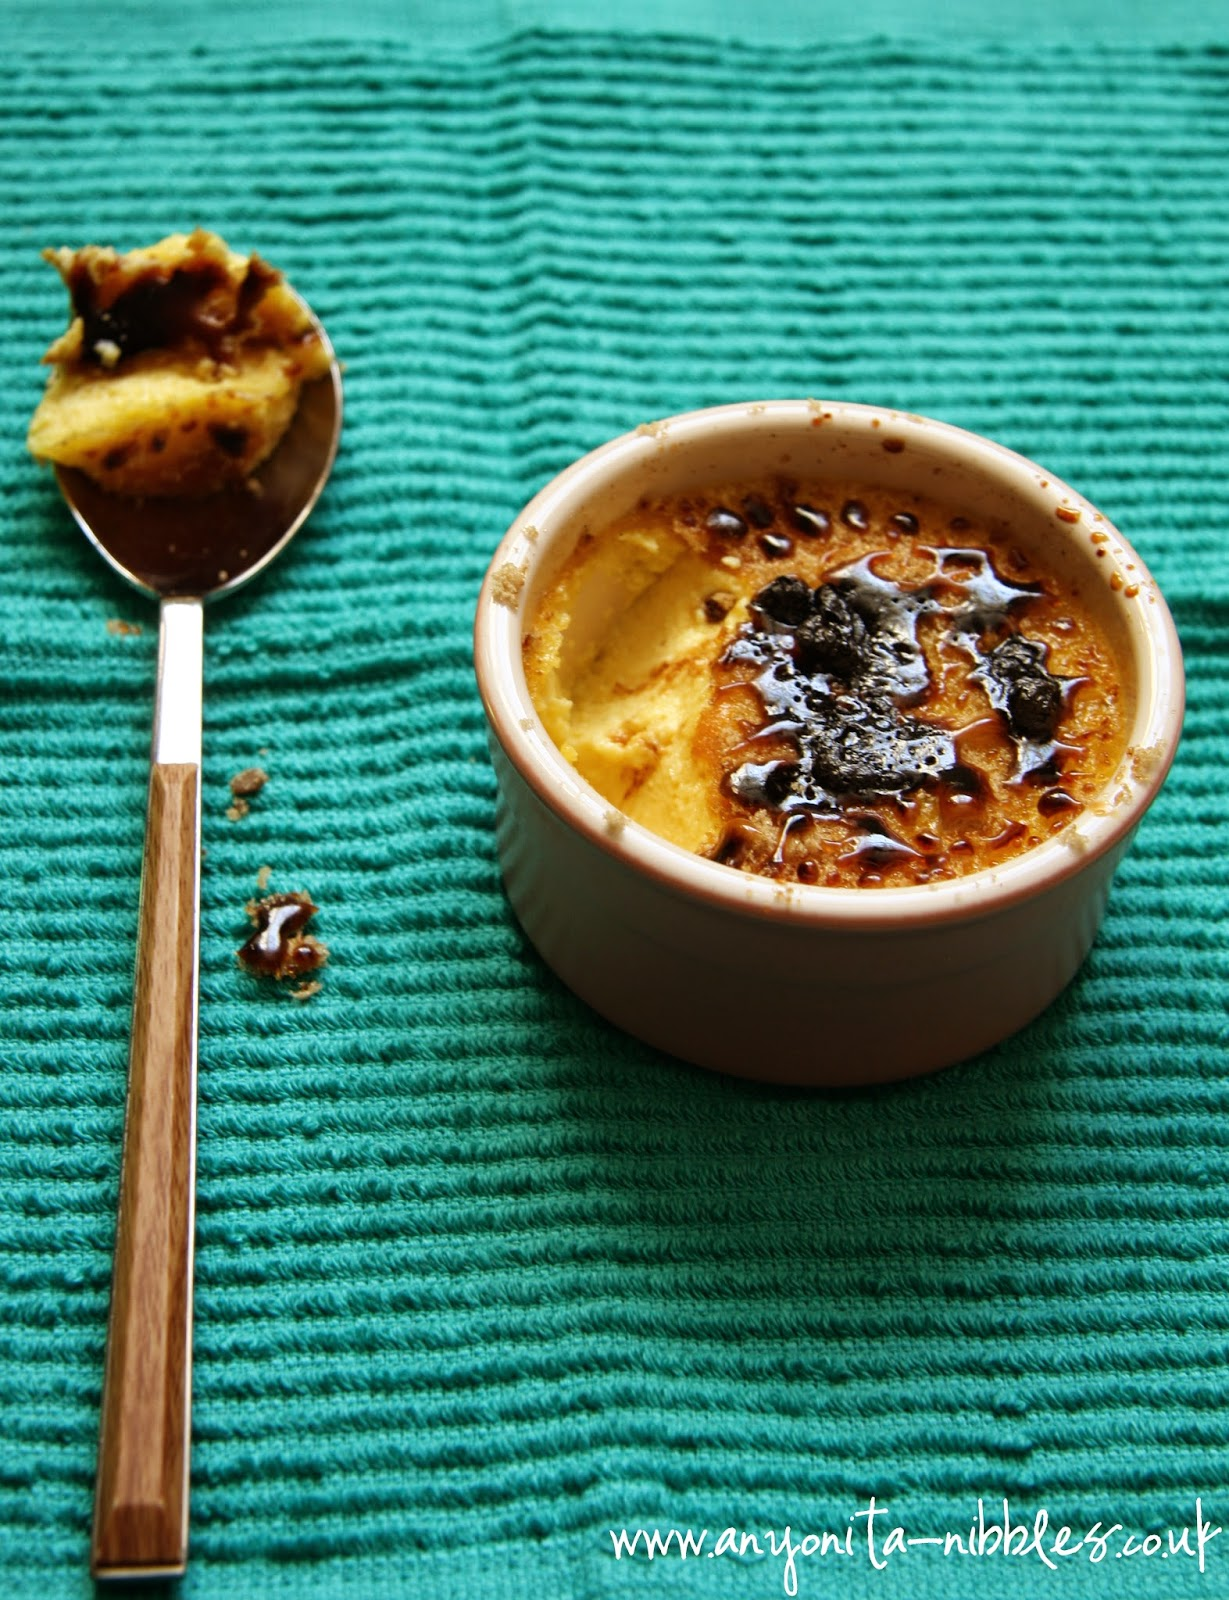 Golden and decadent, spoonful of crème brûlée from Anyonita Nibbles